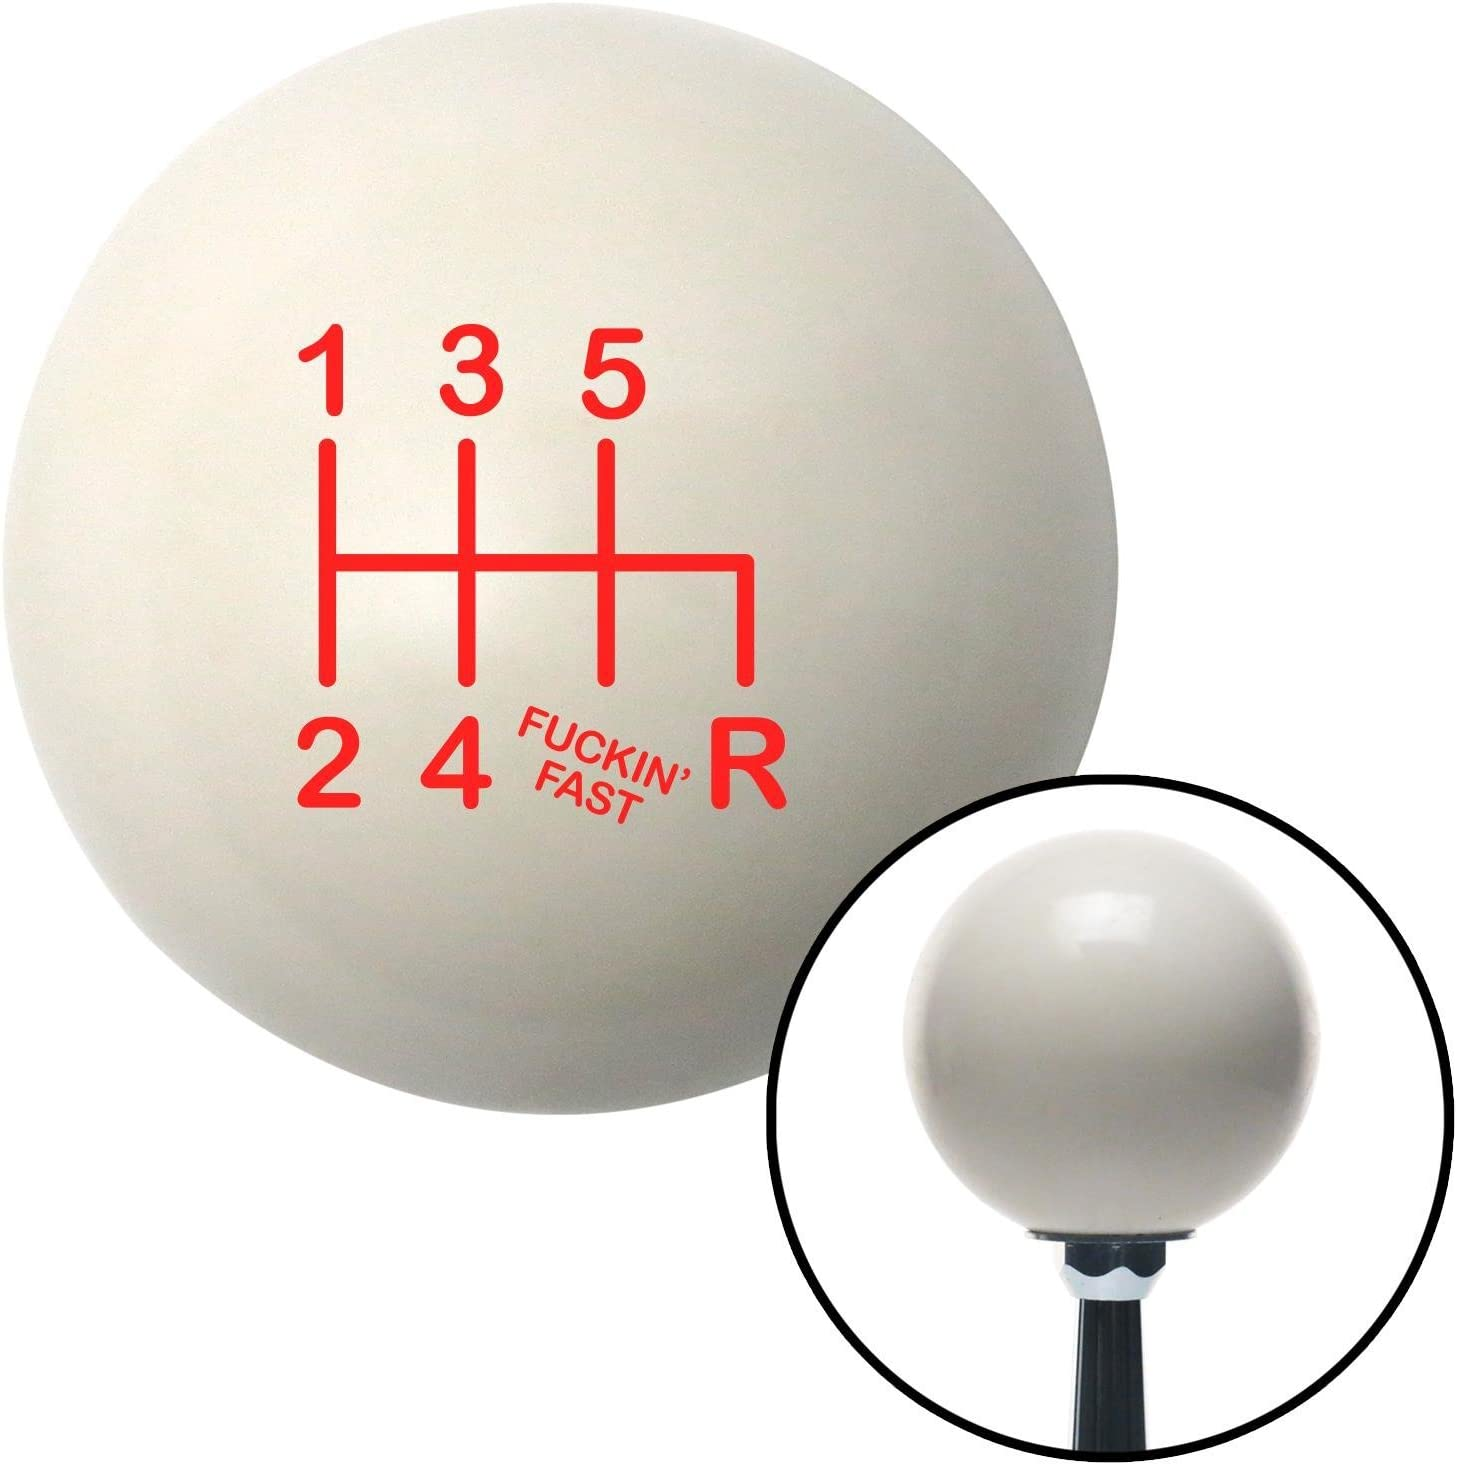 American Shifter 77019 Ivory Shift Knob with M16 x 1.5 Insert Red Shift Pattern Fcking Fast Style 41n